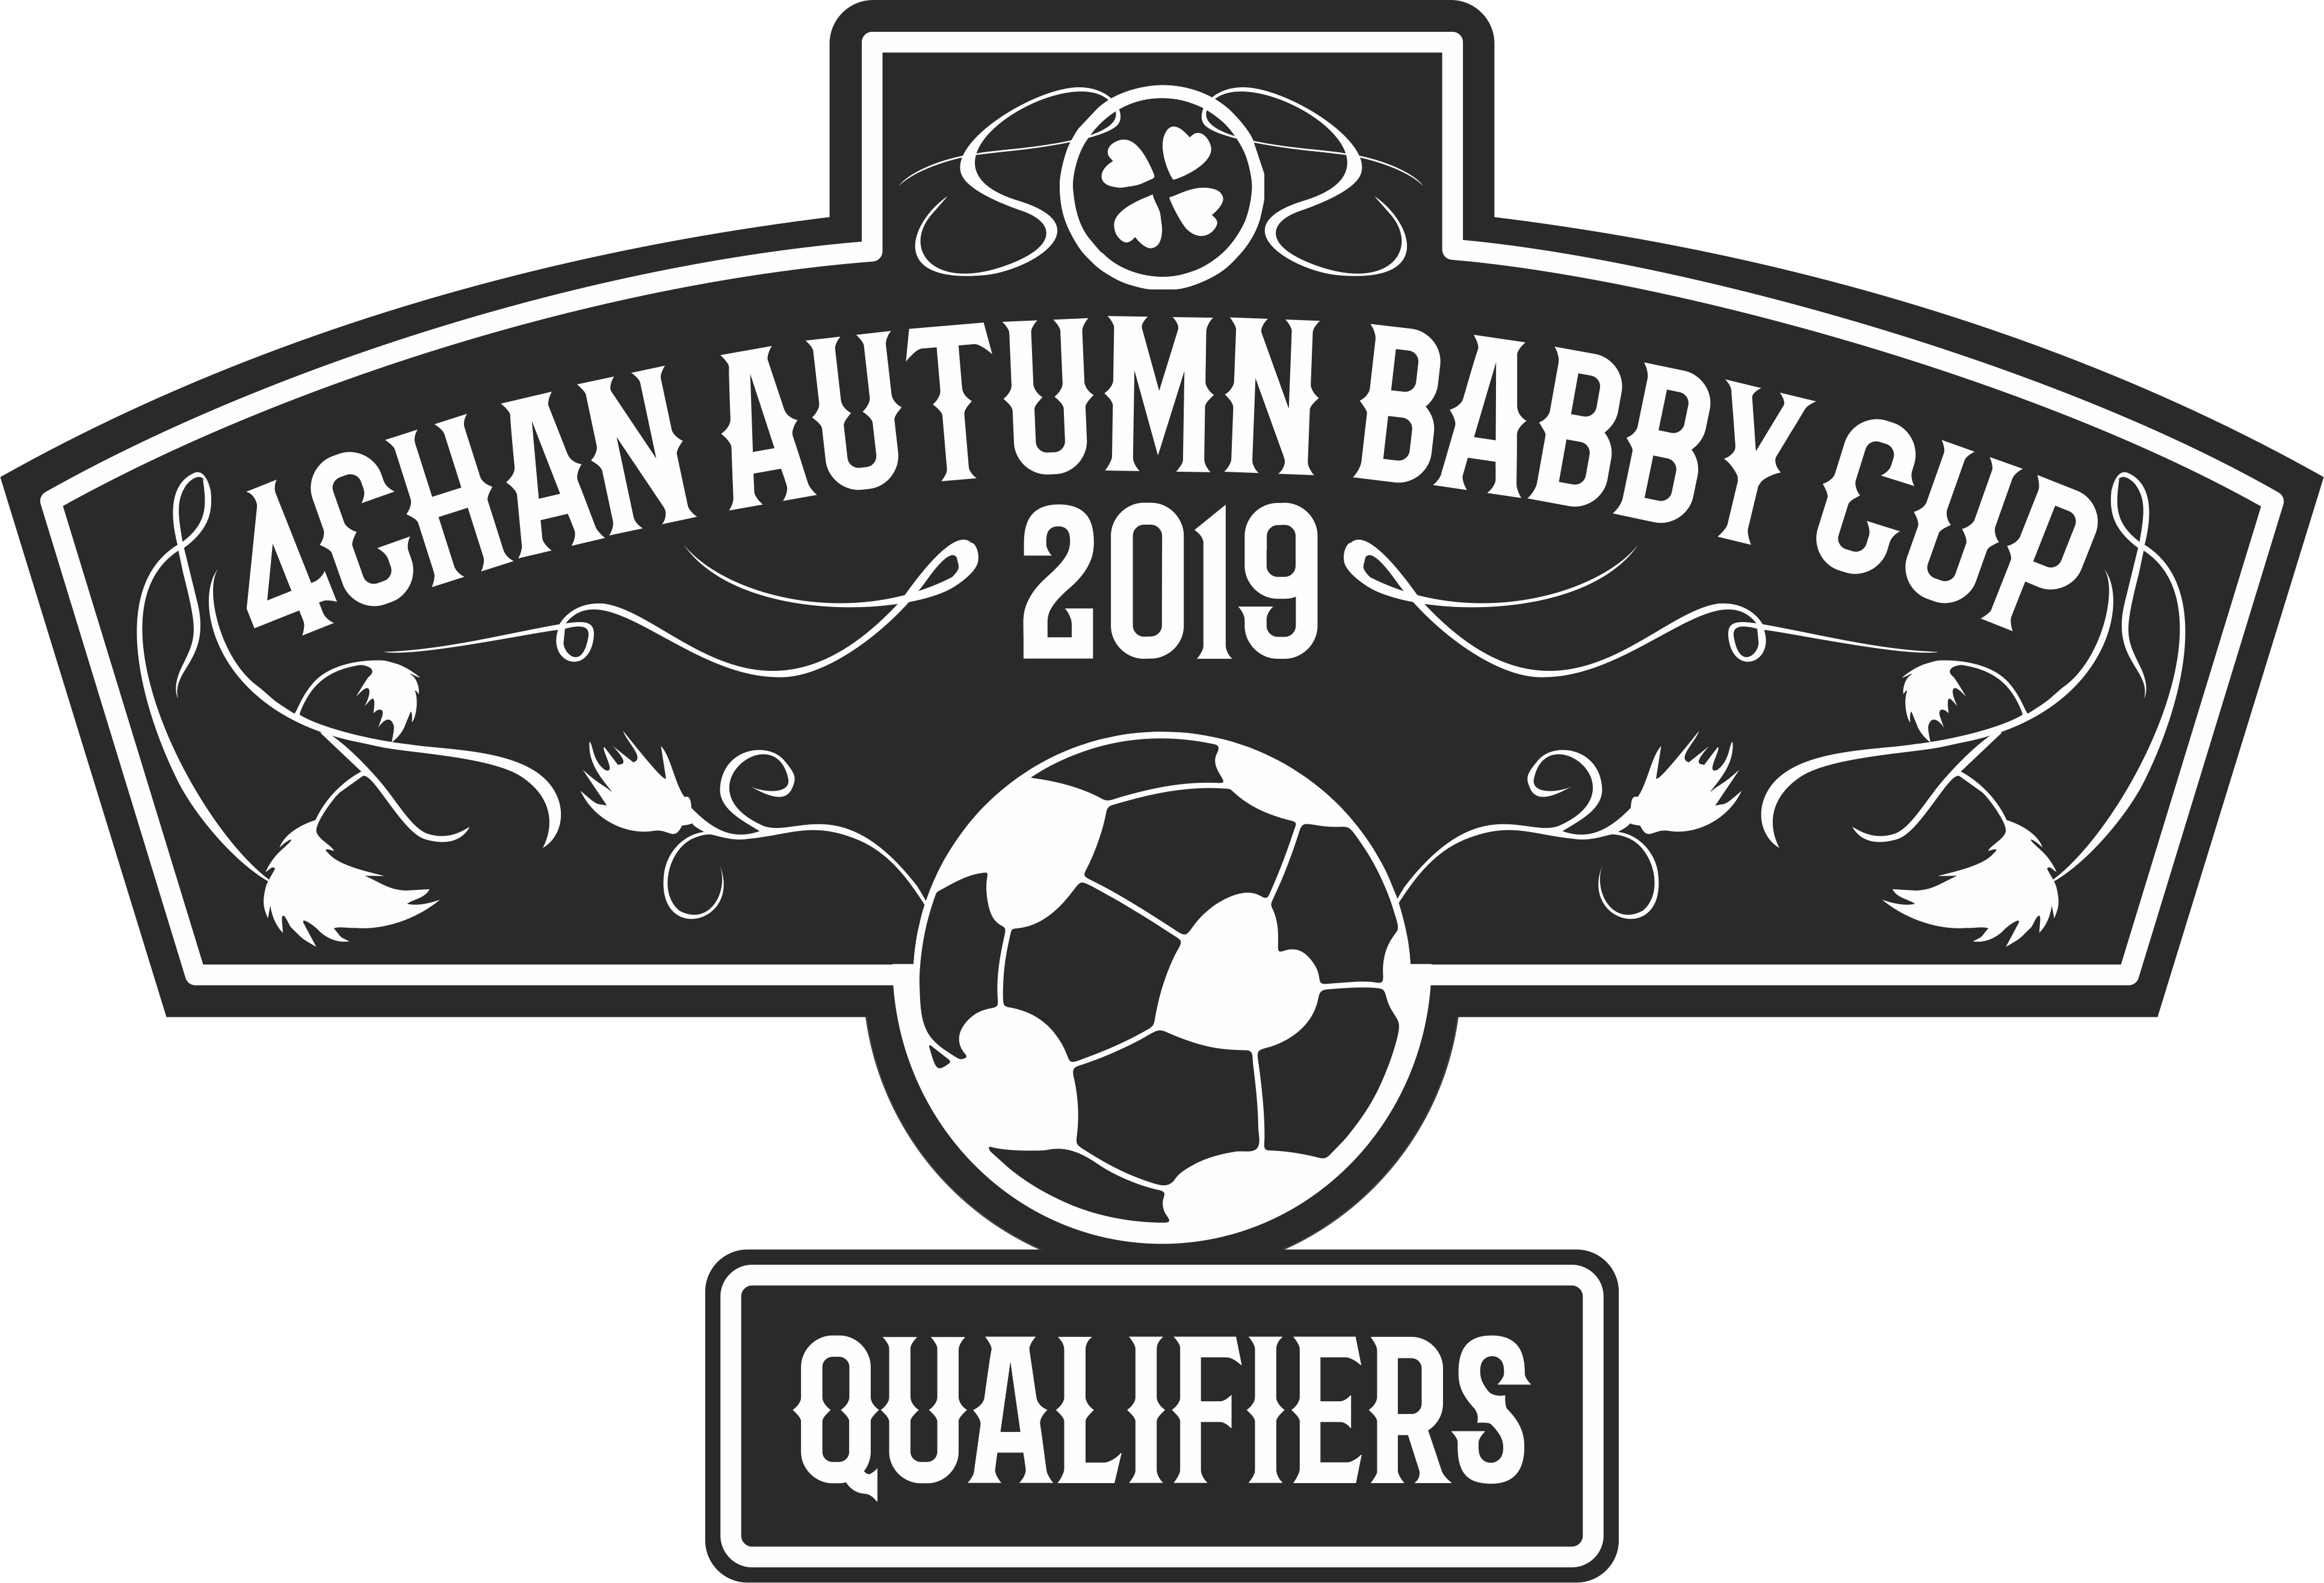 2019 4chan Autumn Babby Cup Qualifiers